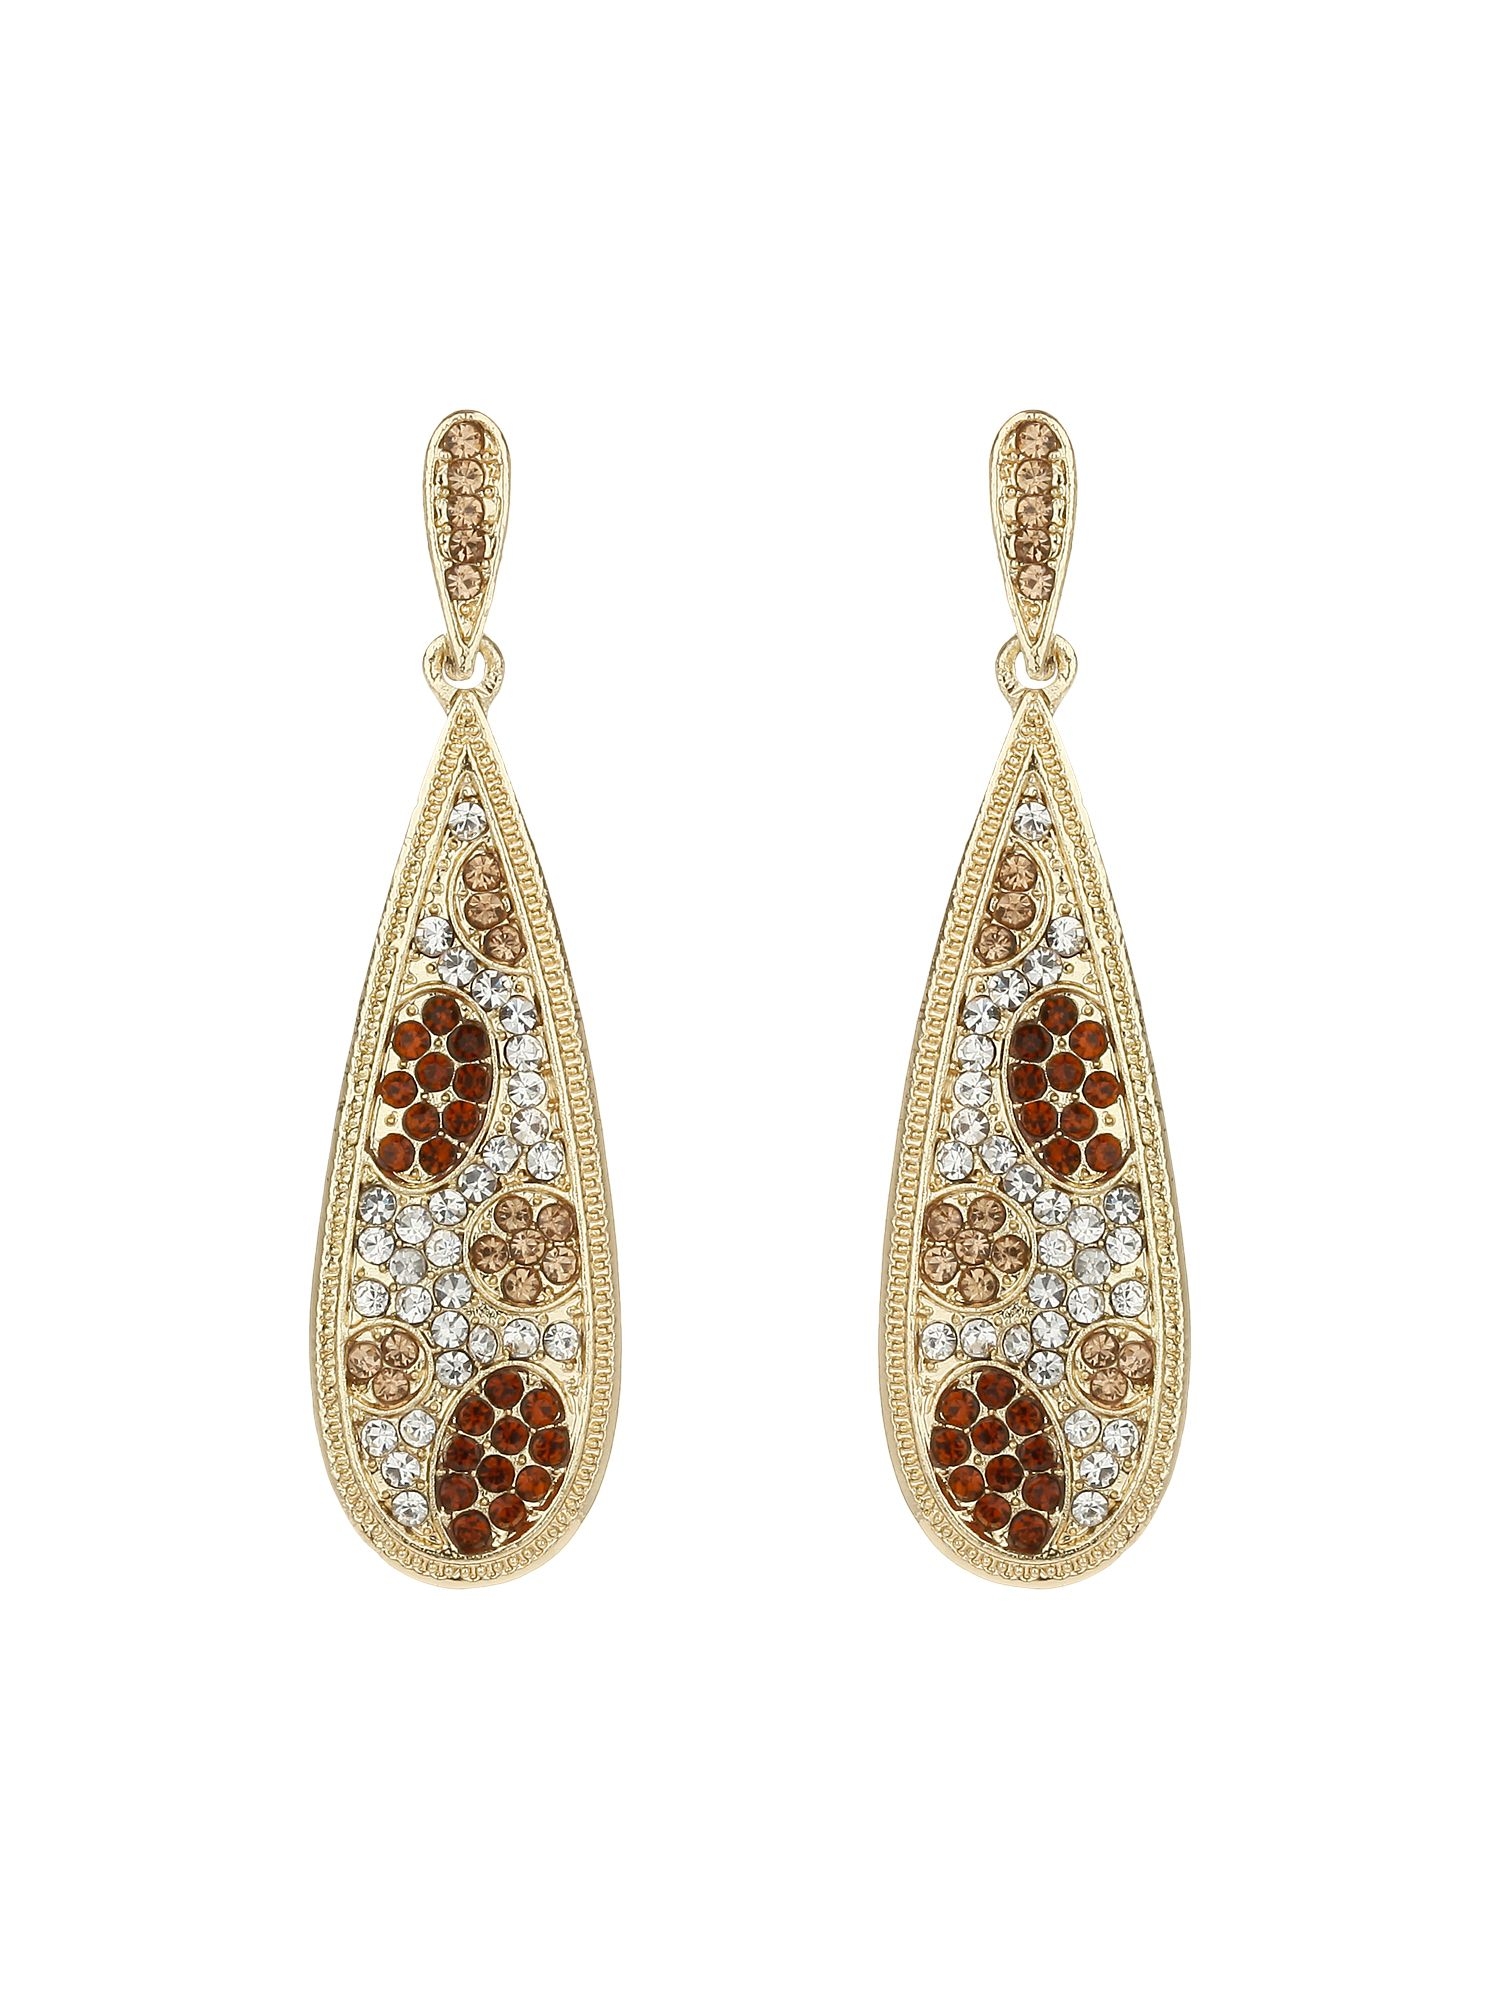 Oval flat earrings